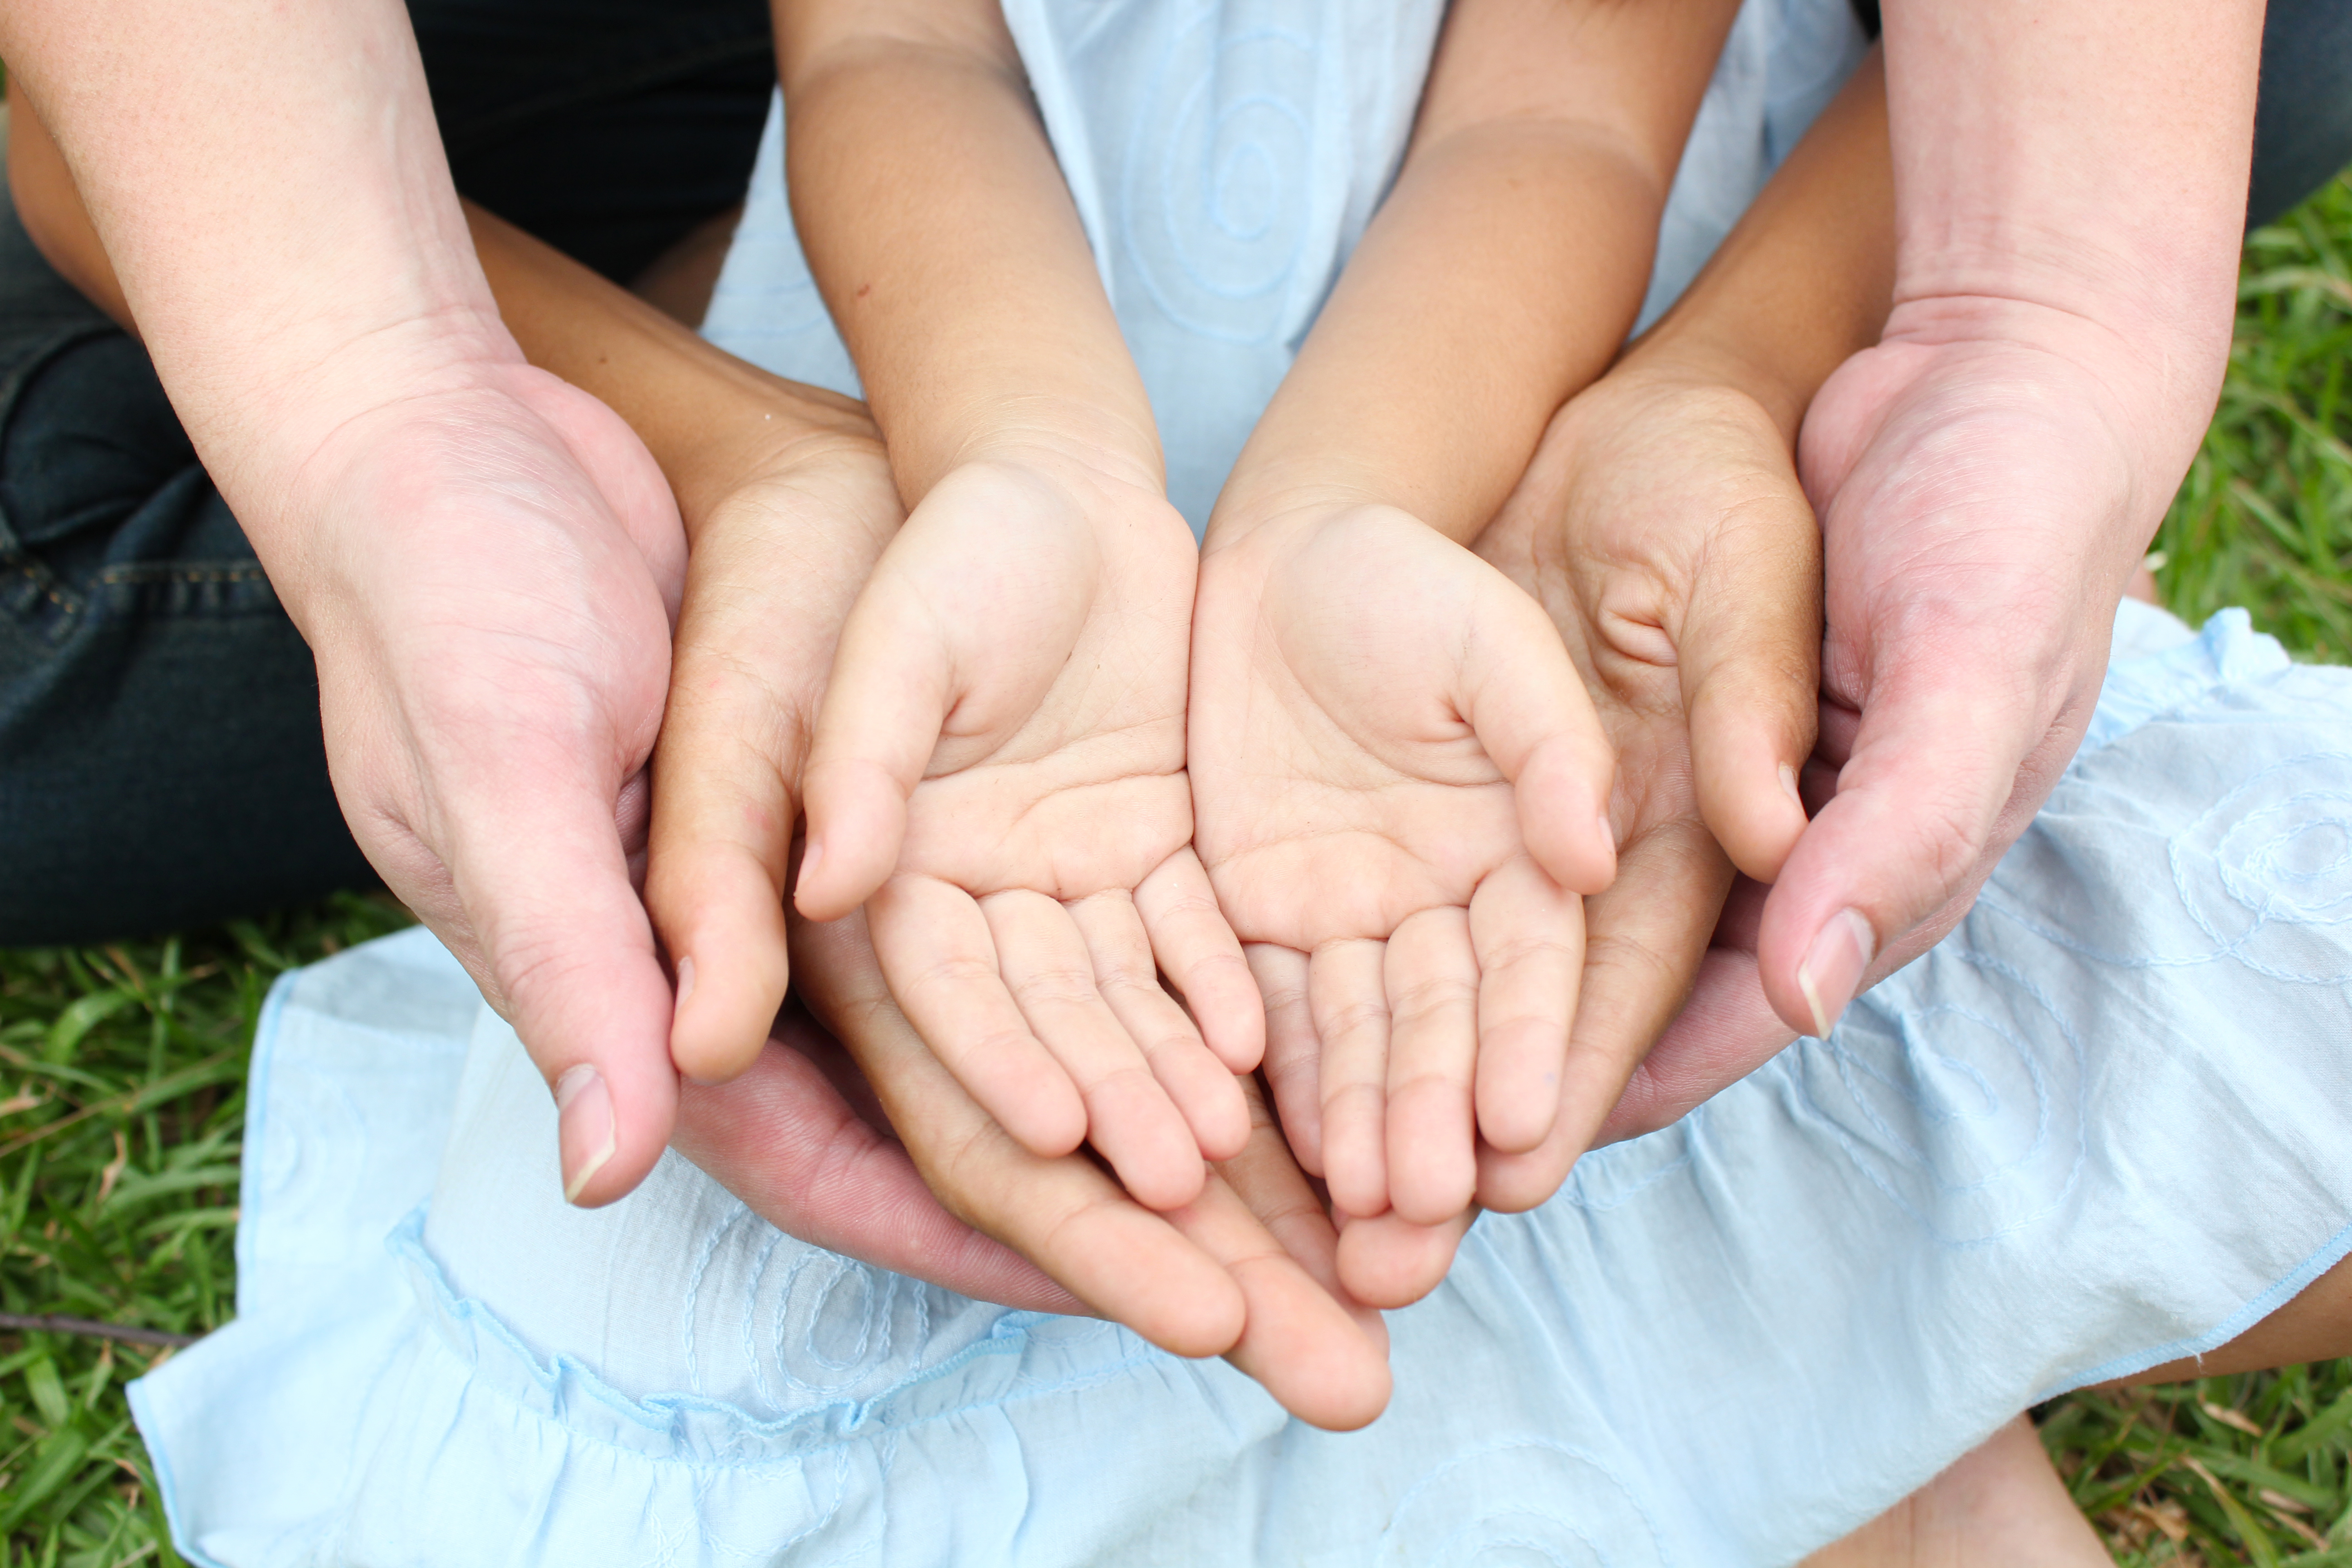 Child's hands in adult's hands